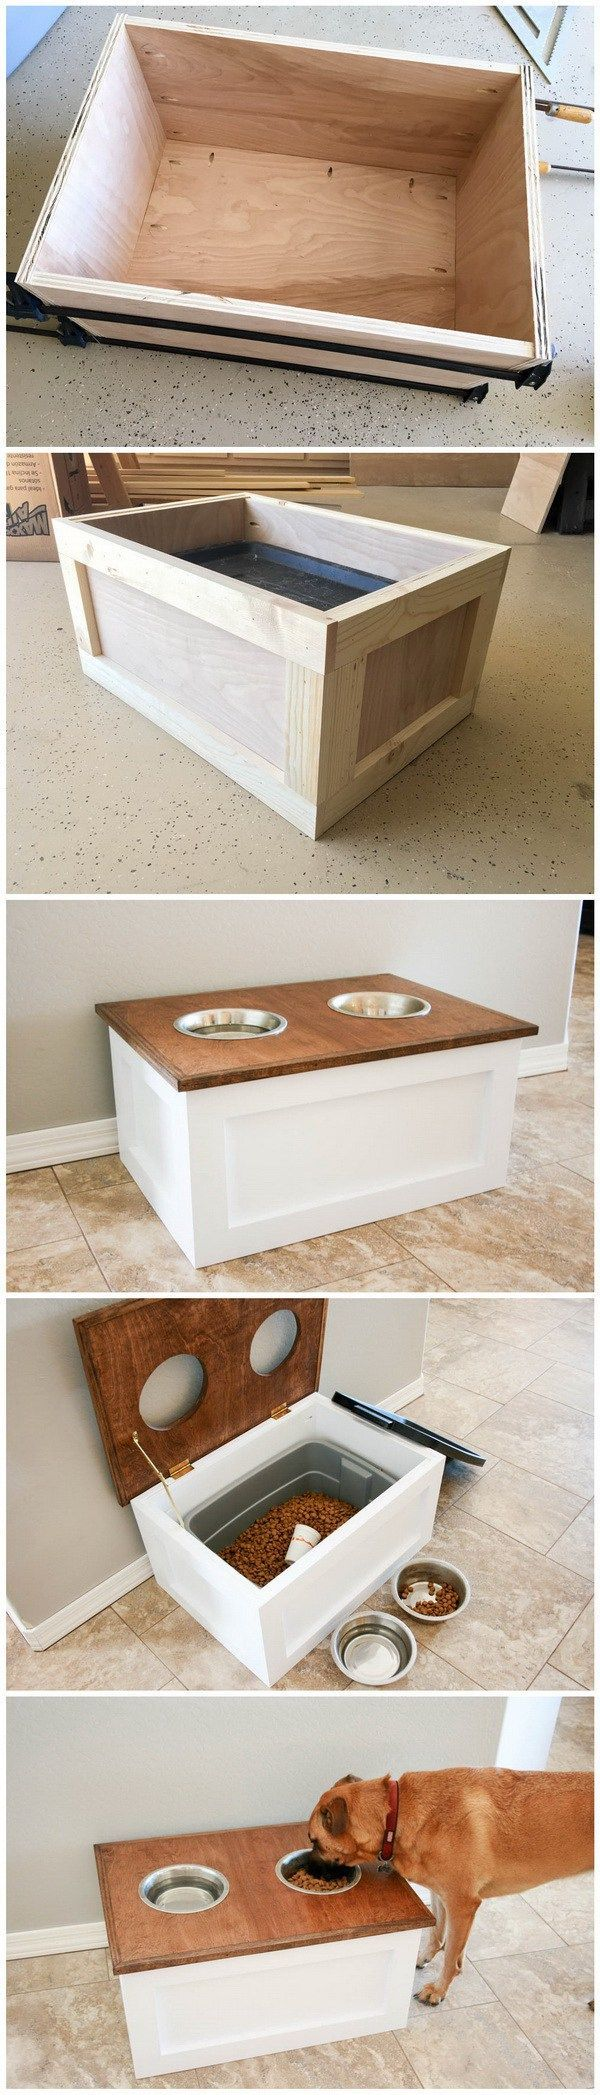 Dog Food Storage And Station: